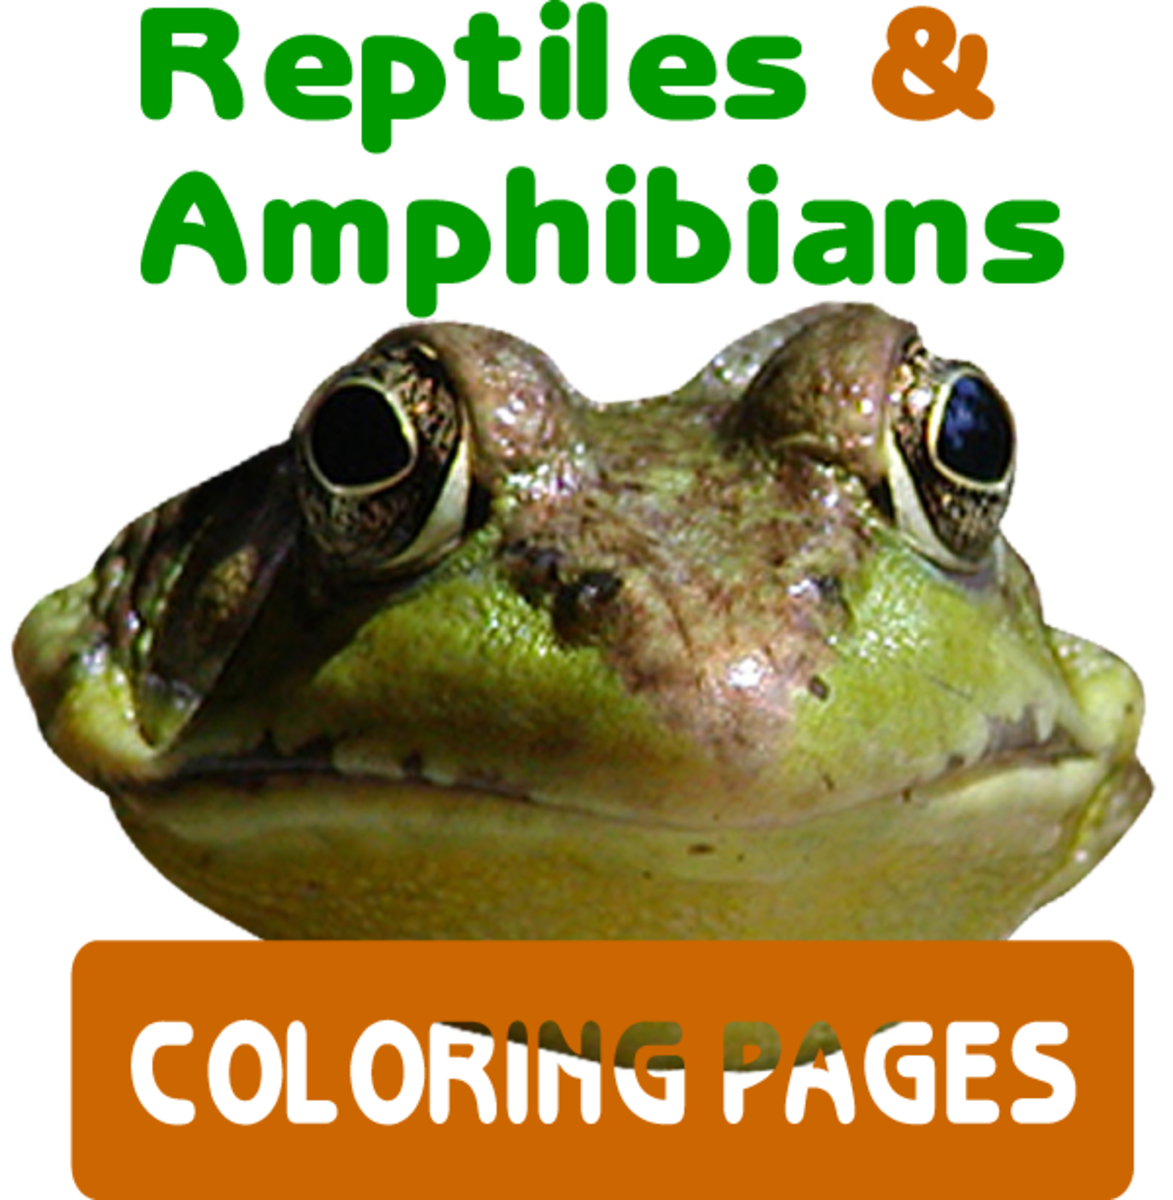 Reptiles & Amphibians Coloring Pages